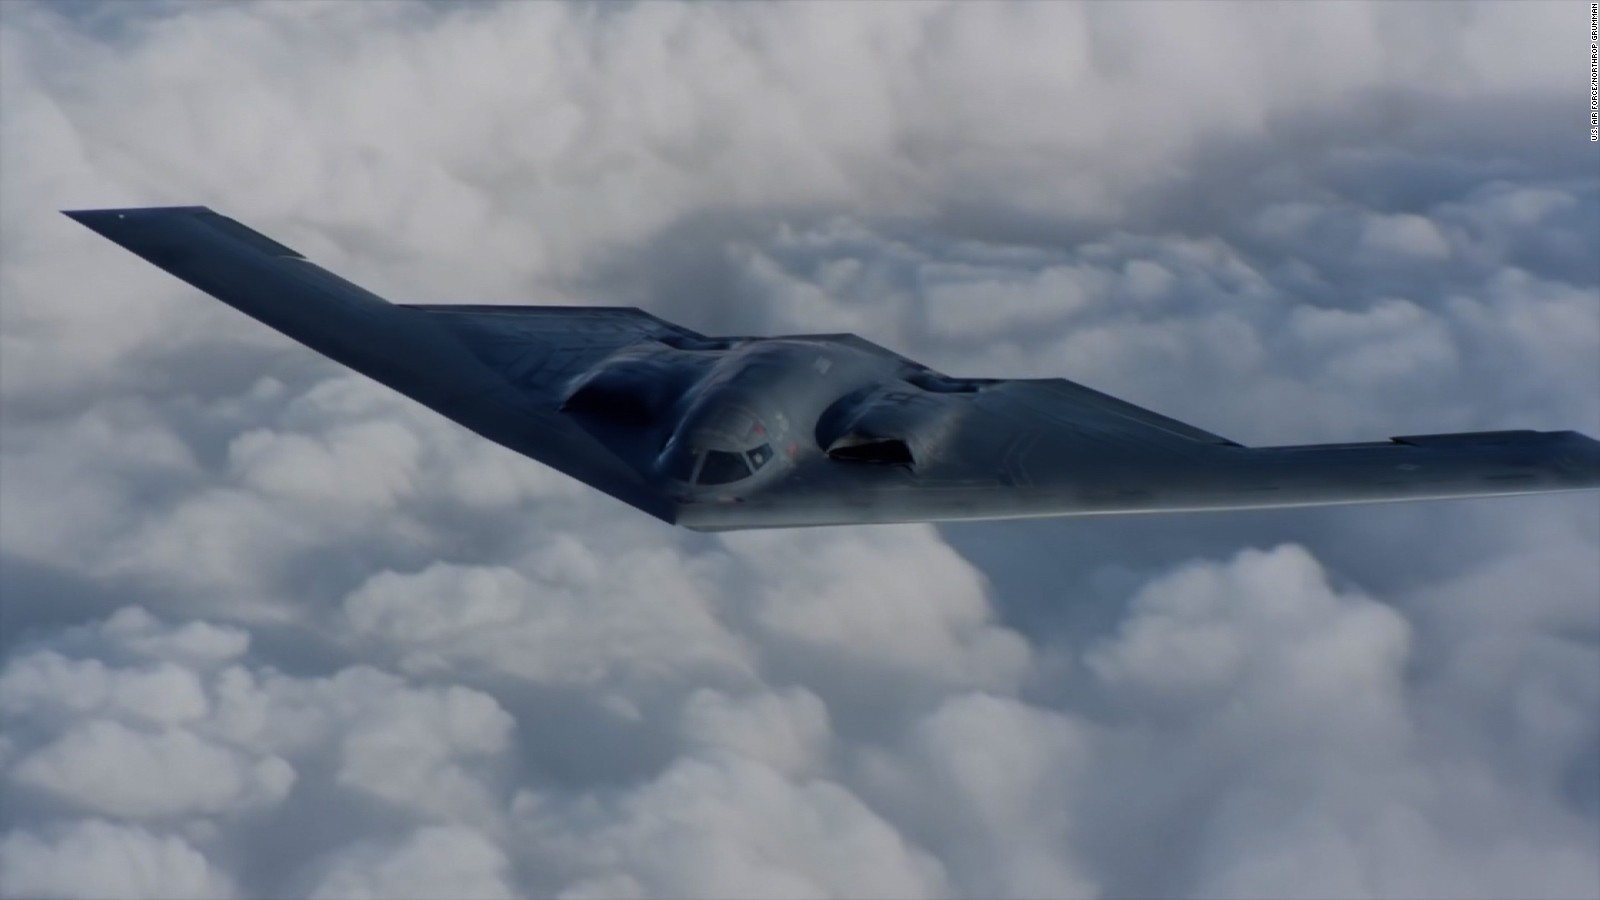 B 2 Bomber Plane Images amp Pictures   Becuo 1600x900